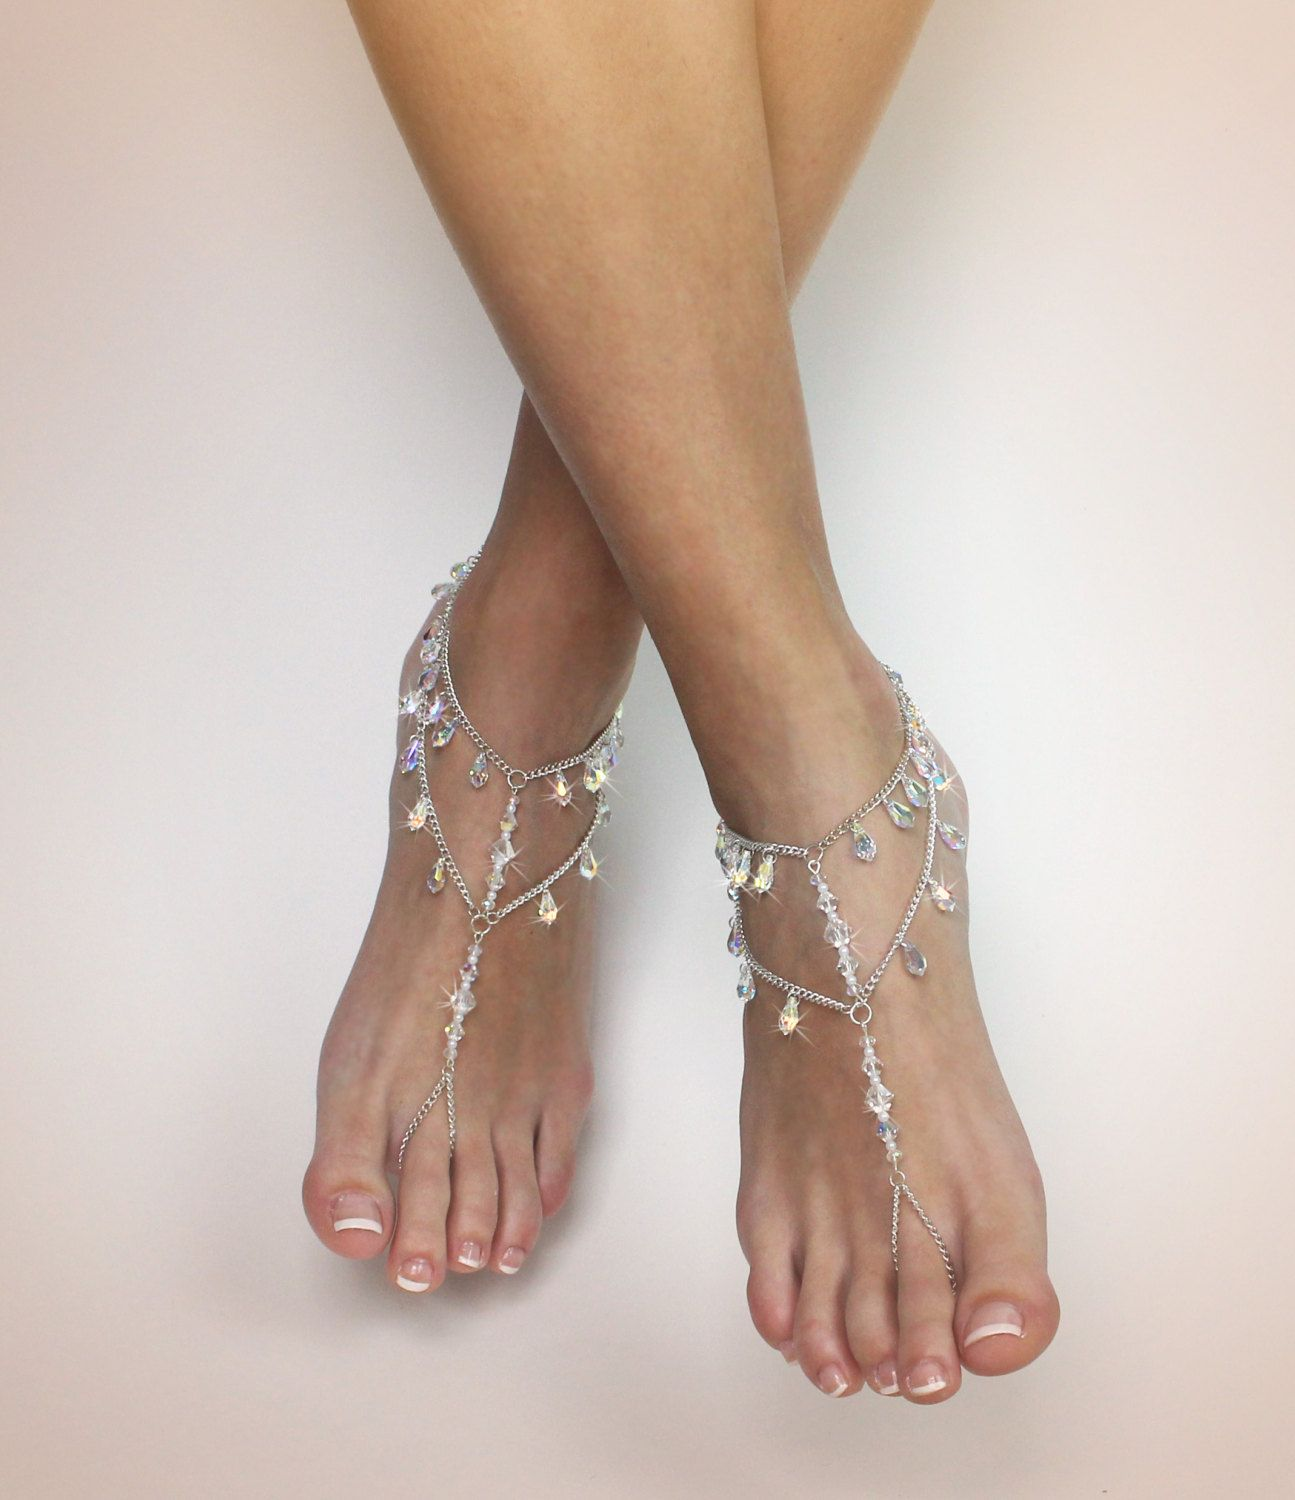 wedding silver sandals bohemian barefoot foot anklets boho dance jewellery jewelry anklet pin jewelled ancient indian